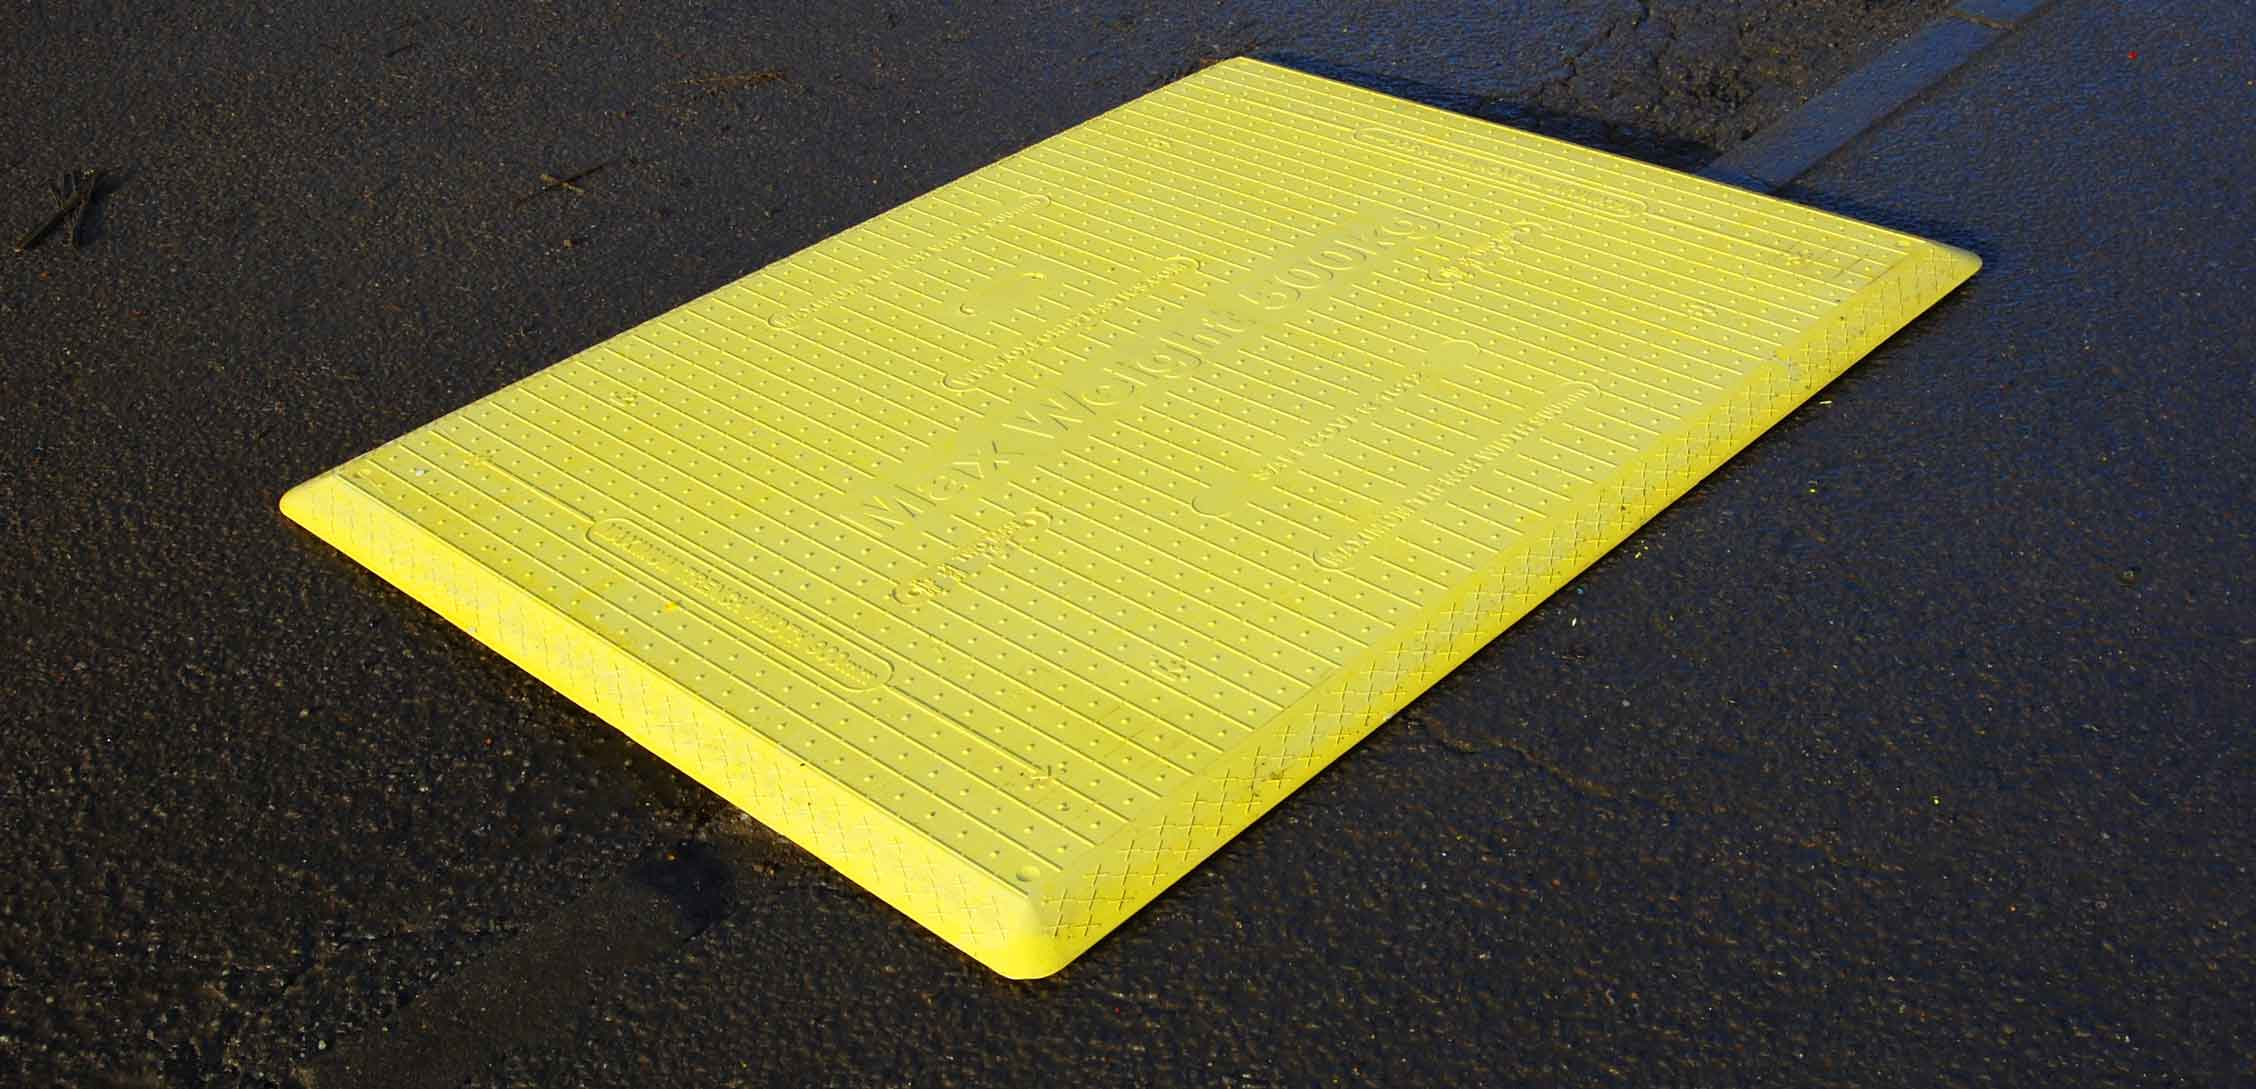 16 12 Trench Cover Oxford Plastics